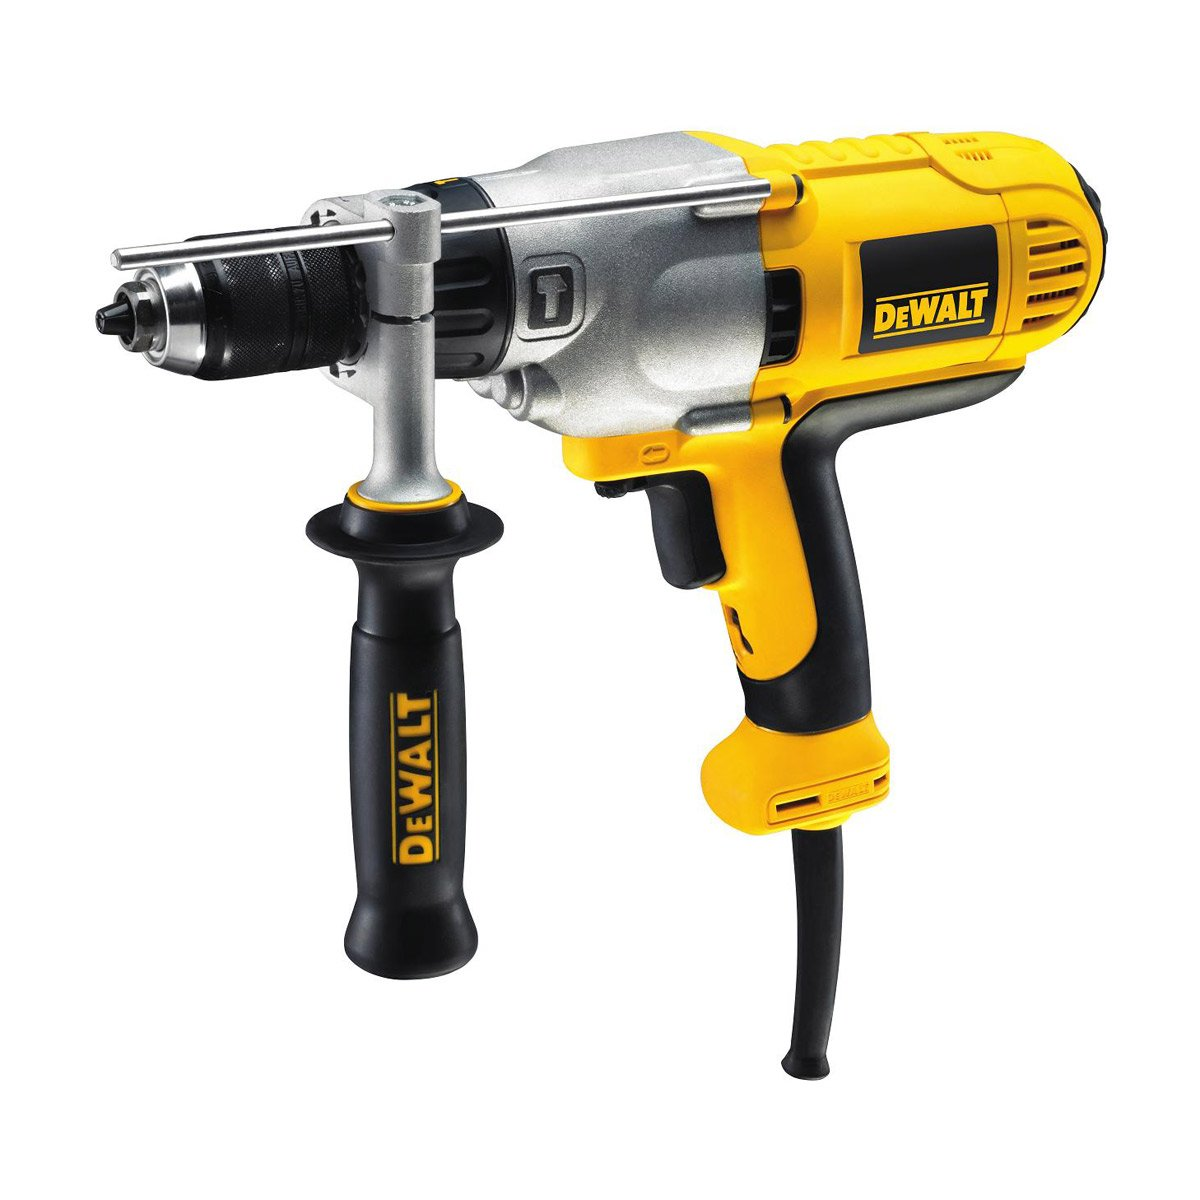 Authorised Power Tools Distributor In Dubai UAE